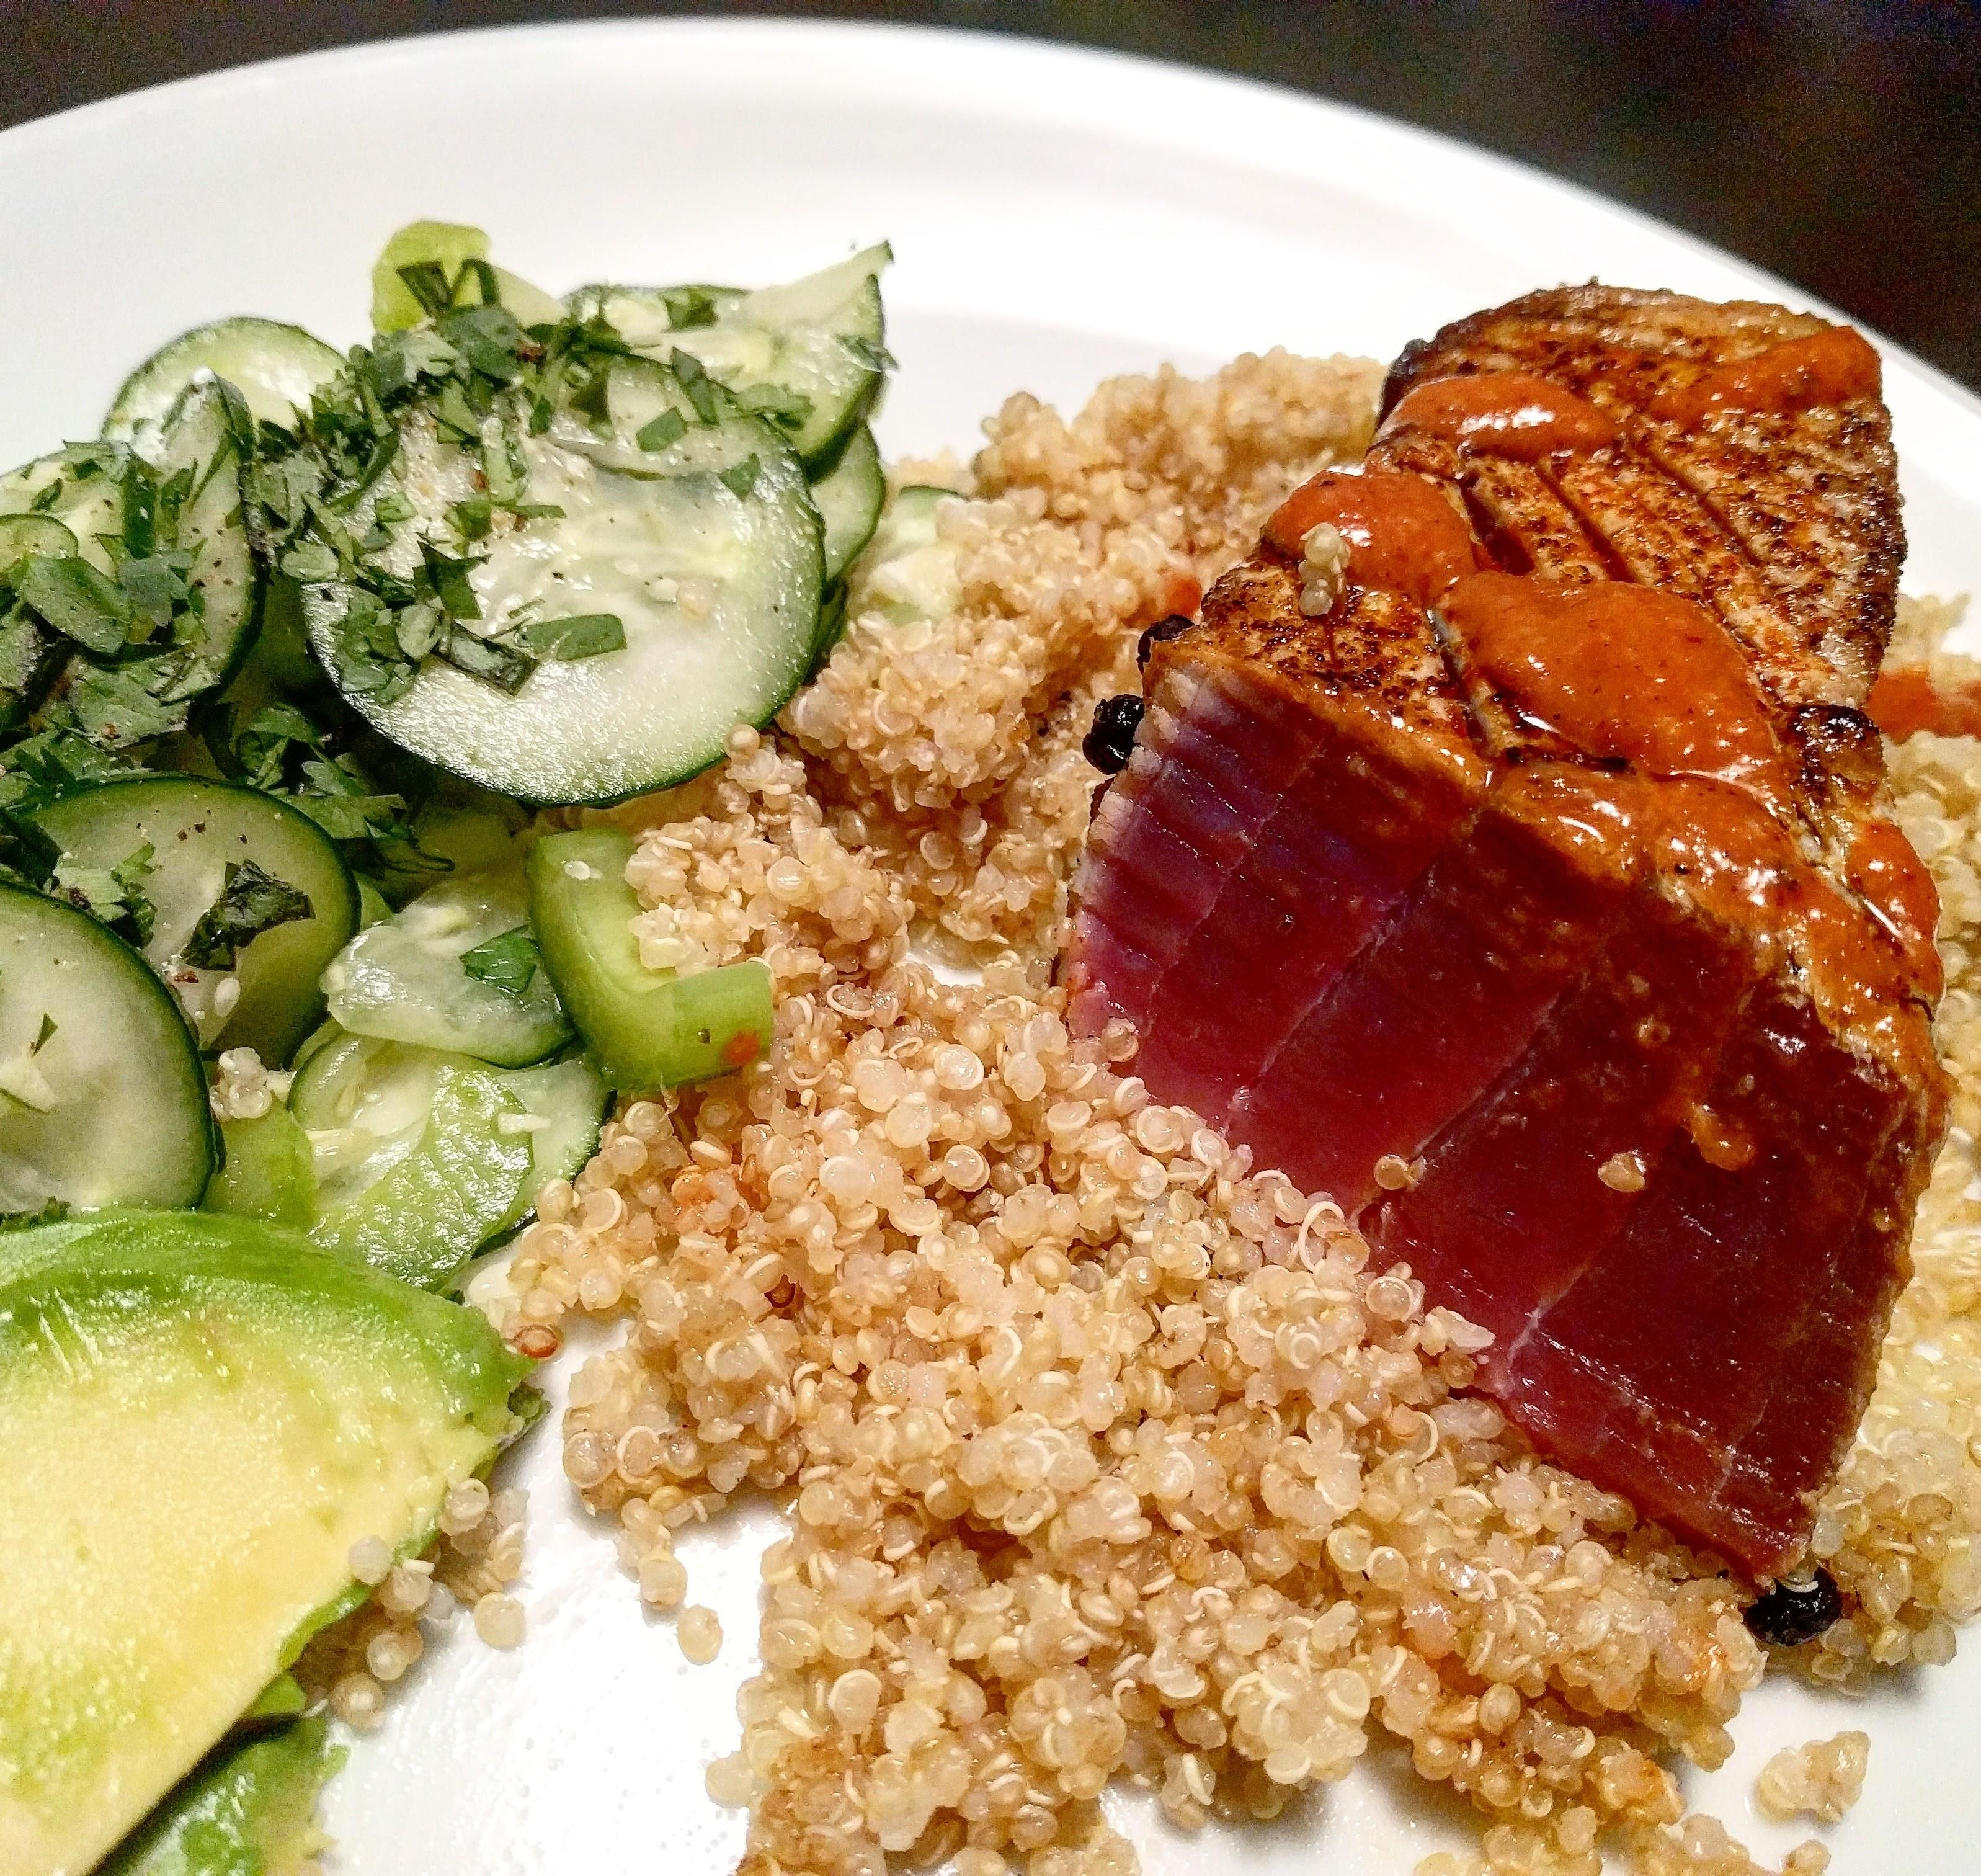 Homemade vacation themed dinner seared ahi with a refreshing homemade vacation themed dinner seared ahi with a refreshing cucumber salad recipes food cooking delicious foodie foodrecipes cook recipe health forumfinder Choice Image